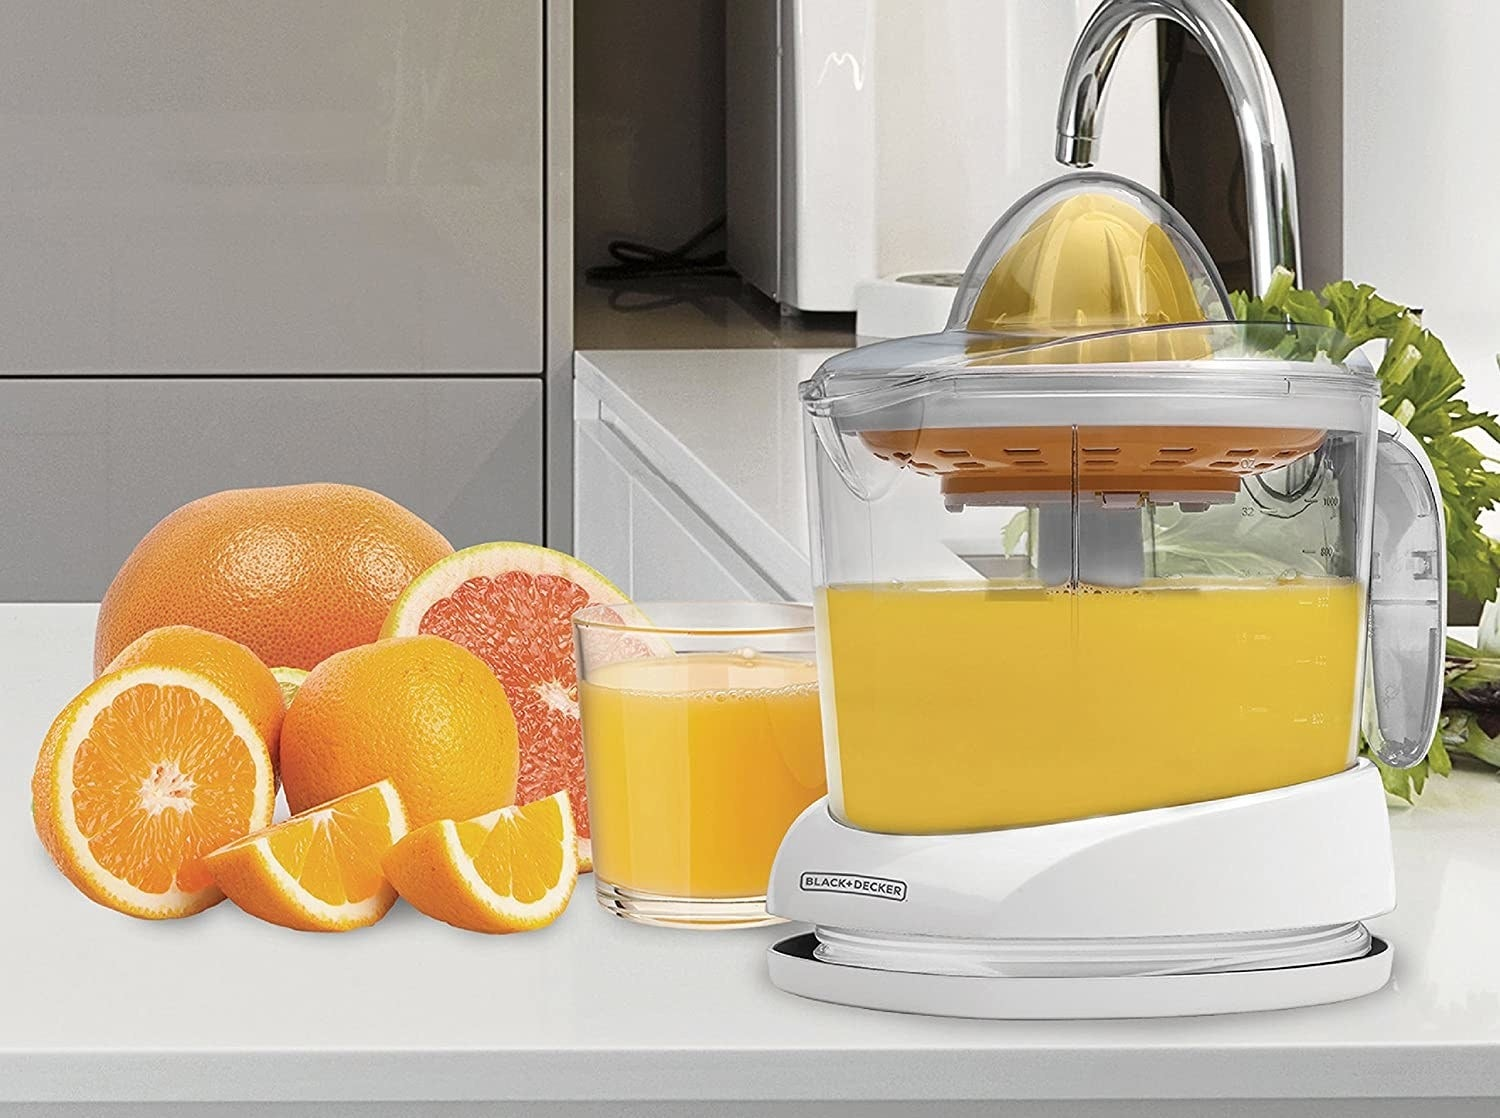 A citrus juicer surrounded by fruit on a kitchen counter